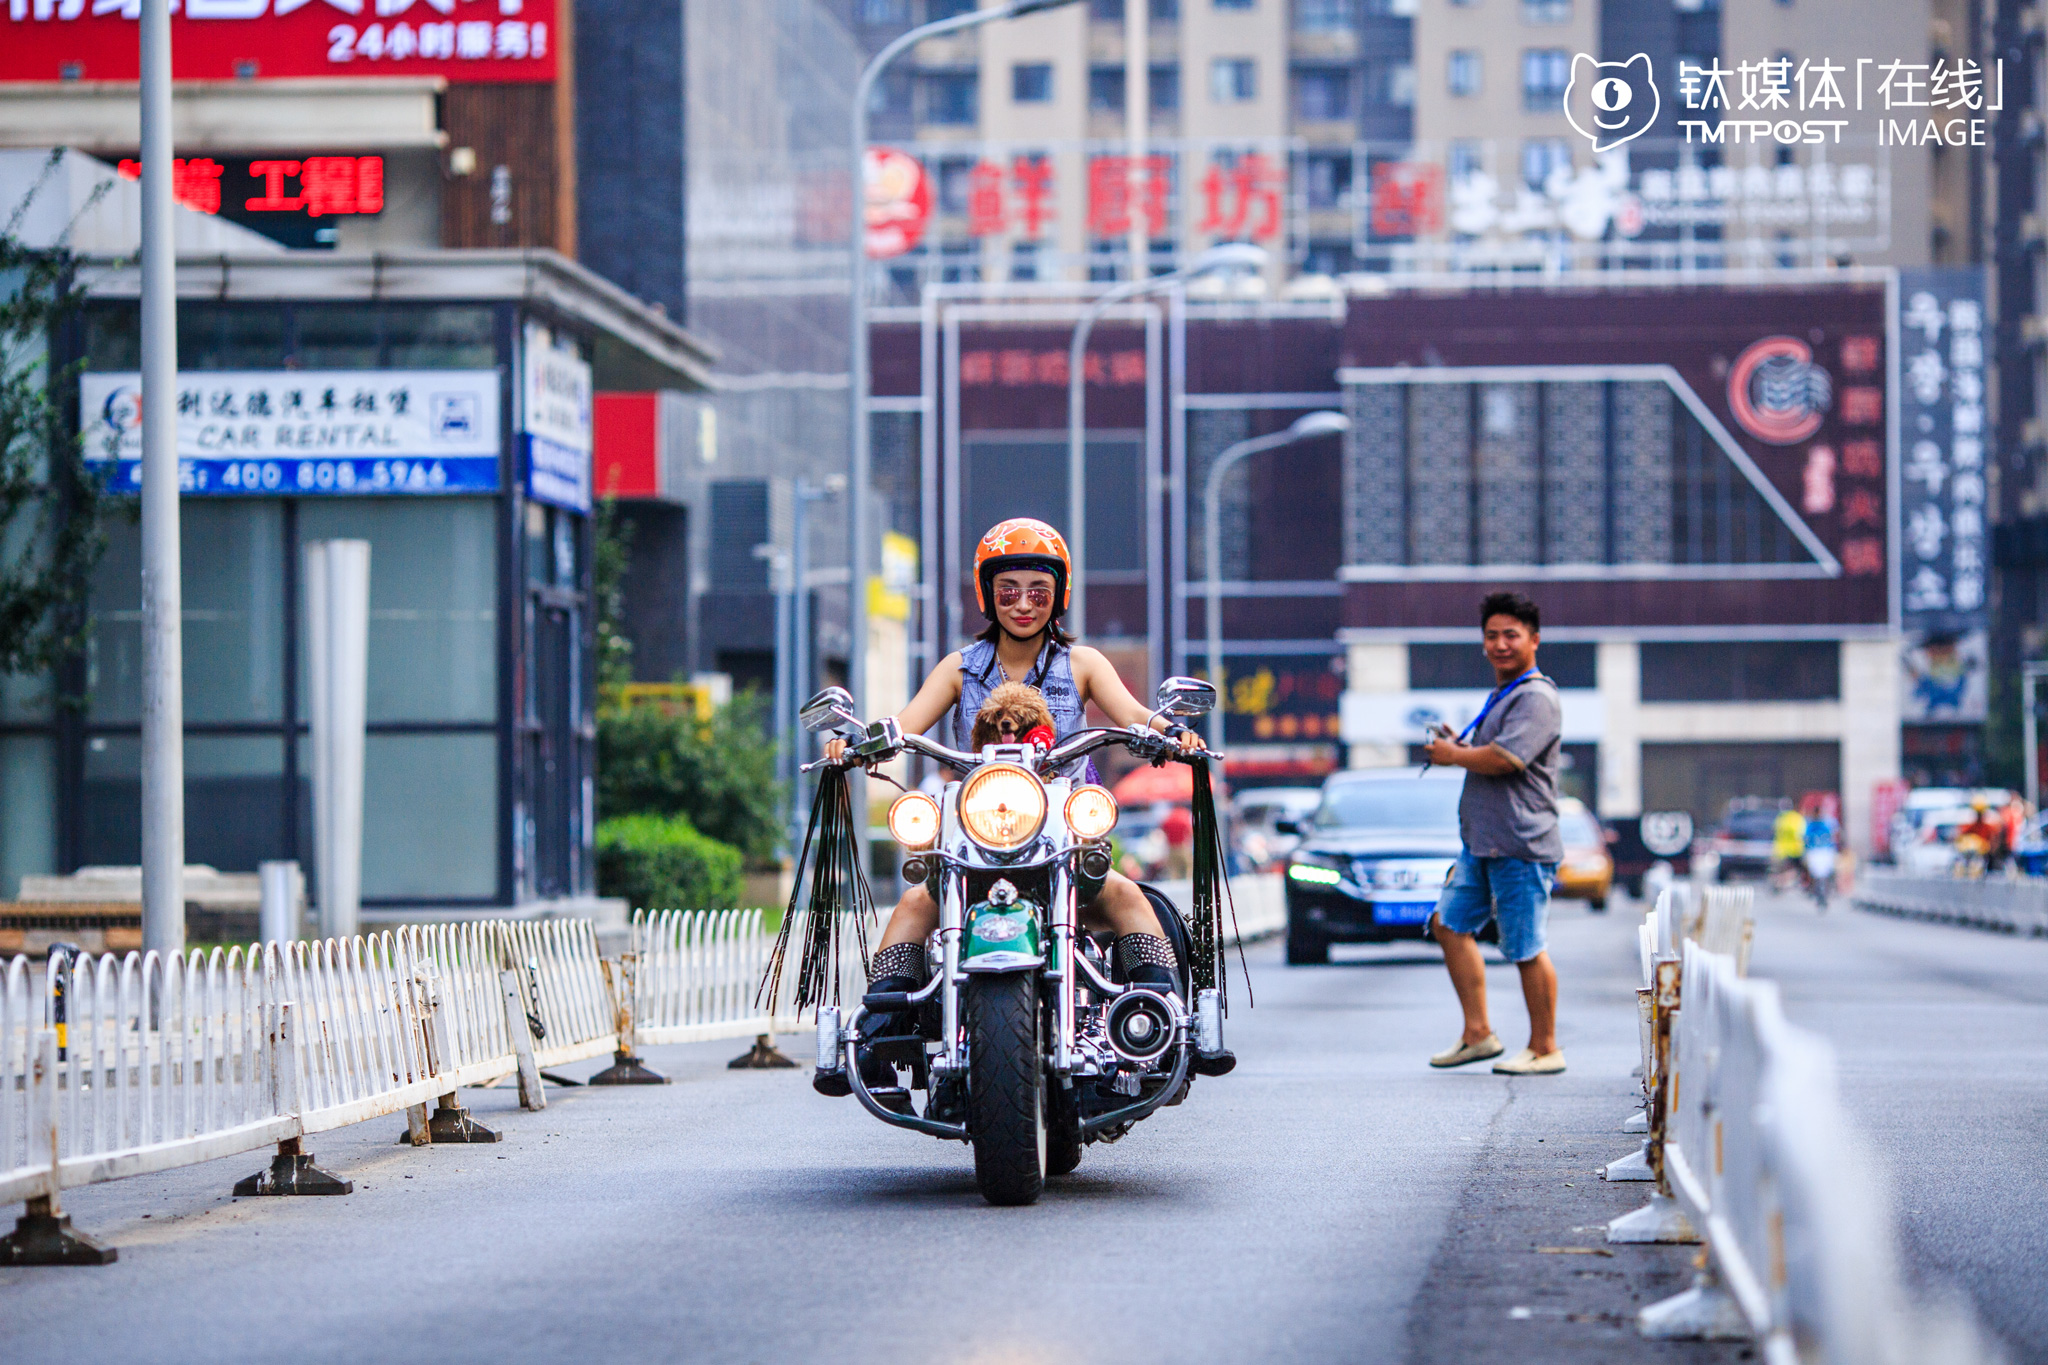 "Yan Han, owner of an interior design studio, is also founder of female Harley motorcycle riders club ""Top Riders"". She loves Harley motorcycles and bought her first Harley (Harley 883L) four years ago at the price of 300,000 yuan. Her second Harley is modified Softtail Deluxe and cost her 500,000 yuan. ""It's the dream of every motorcycle rider to have a Harley. Different from ordinary motorcycles, Harley represents the pursuit for freedom and happiness instead of pure speed. I travelled on Harley for at least 20,000 kilometers every year,"" she said."